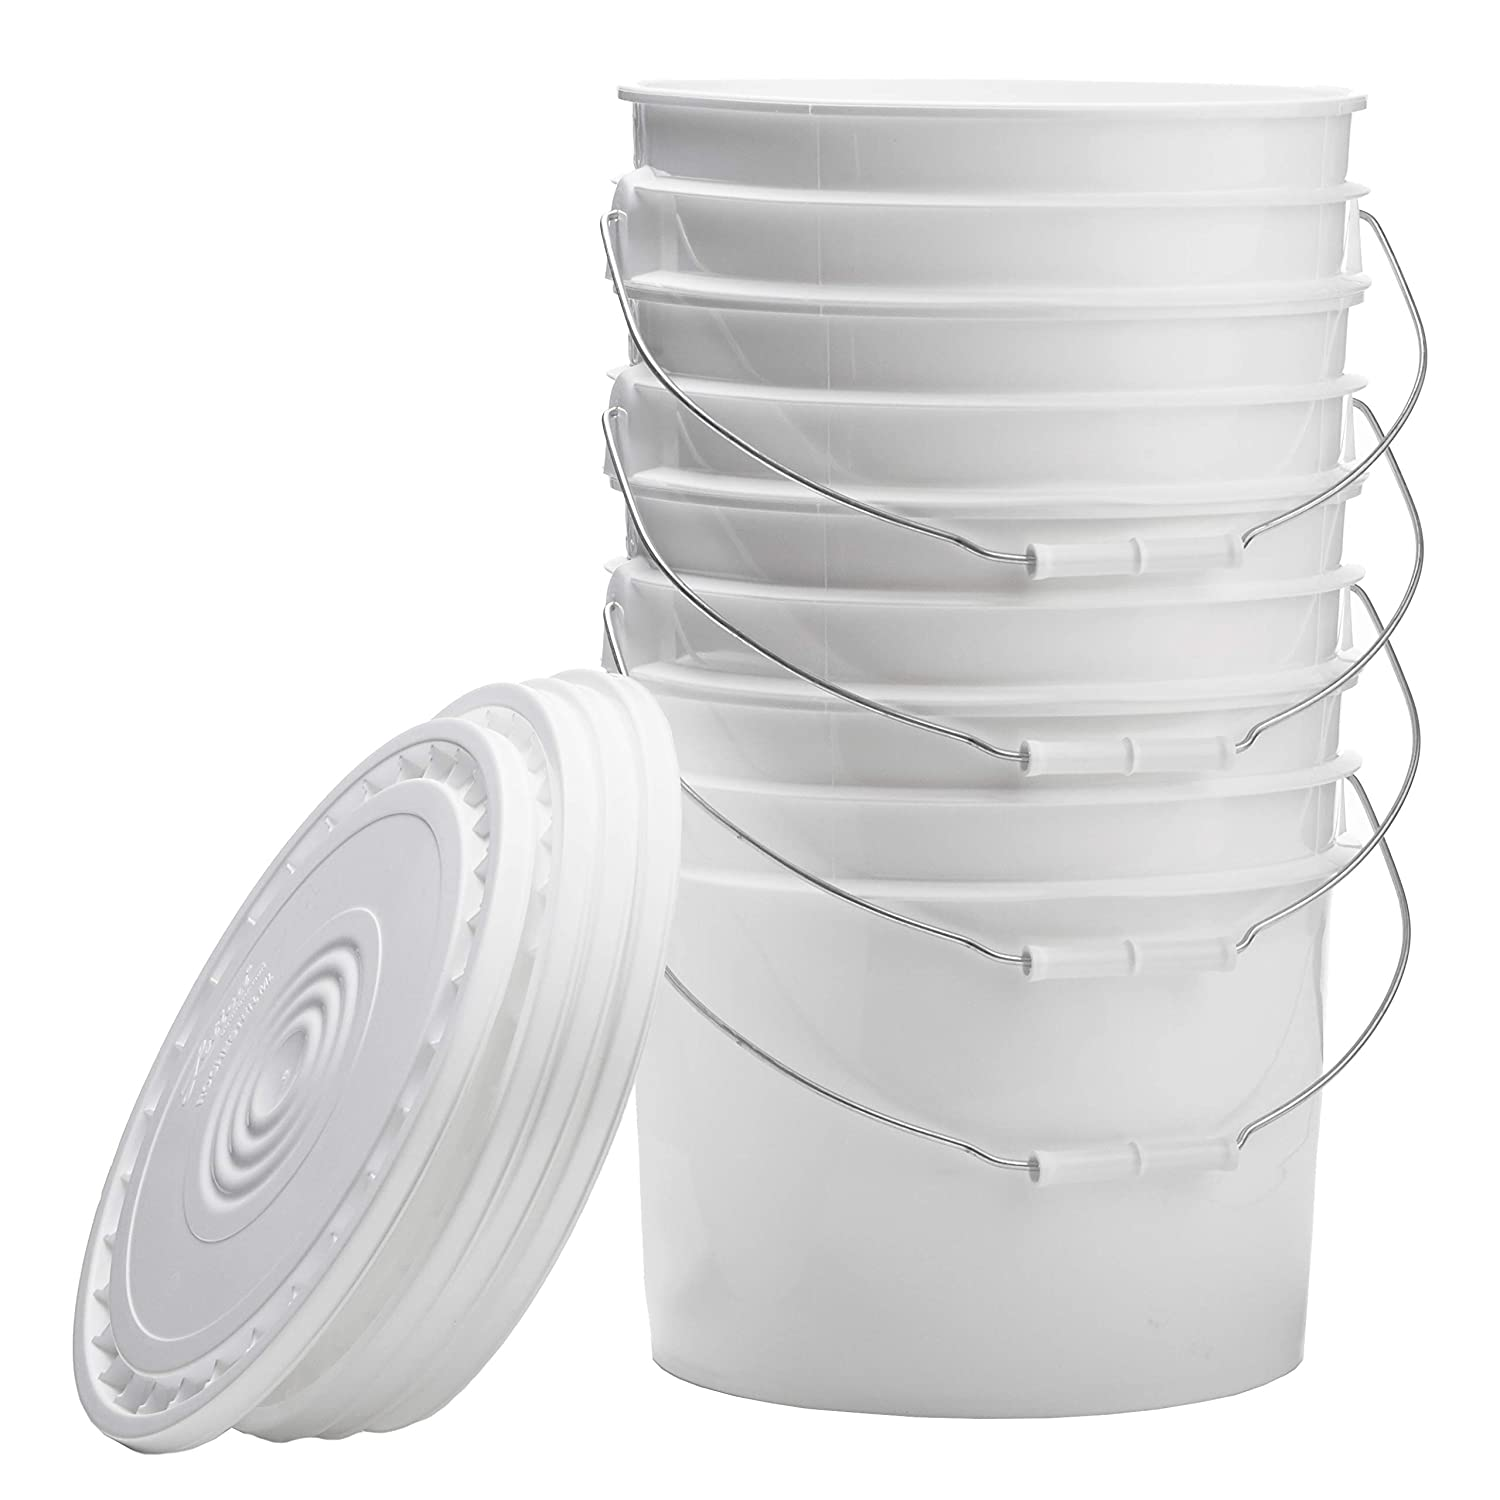 Hudson Exchange Premium 3.5 Gallon Bucket with Lid, 4 Pack, White